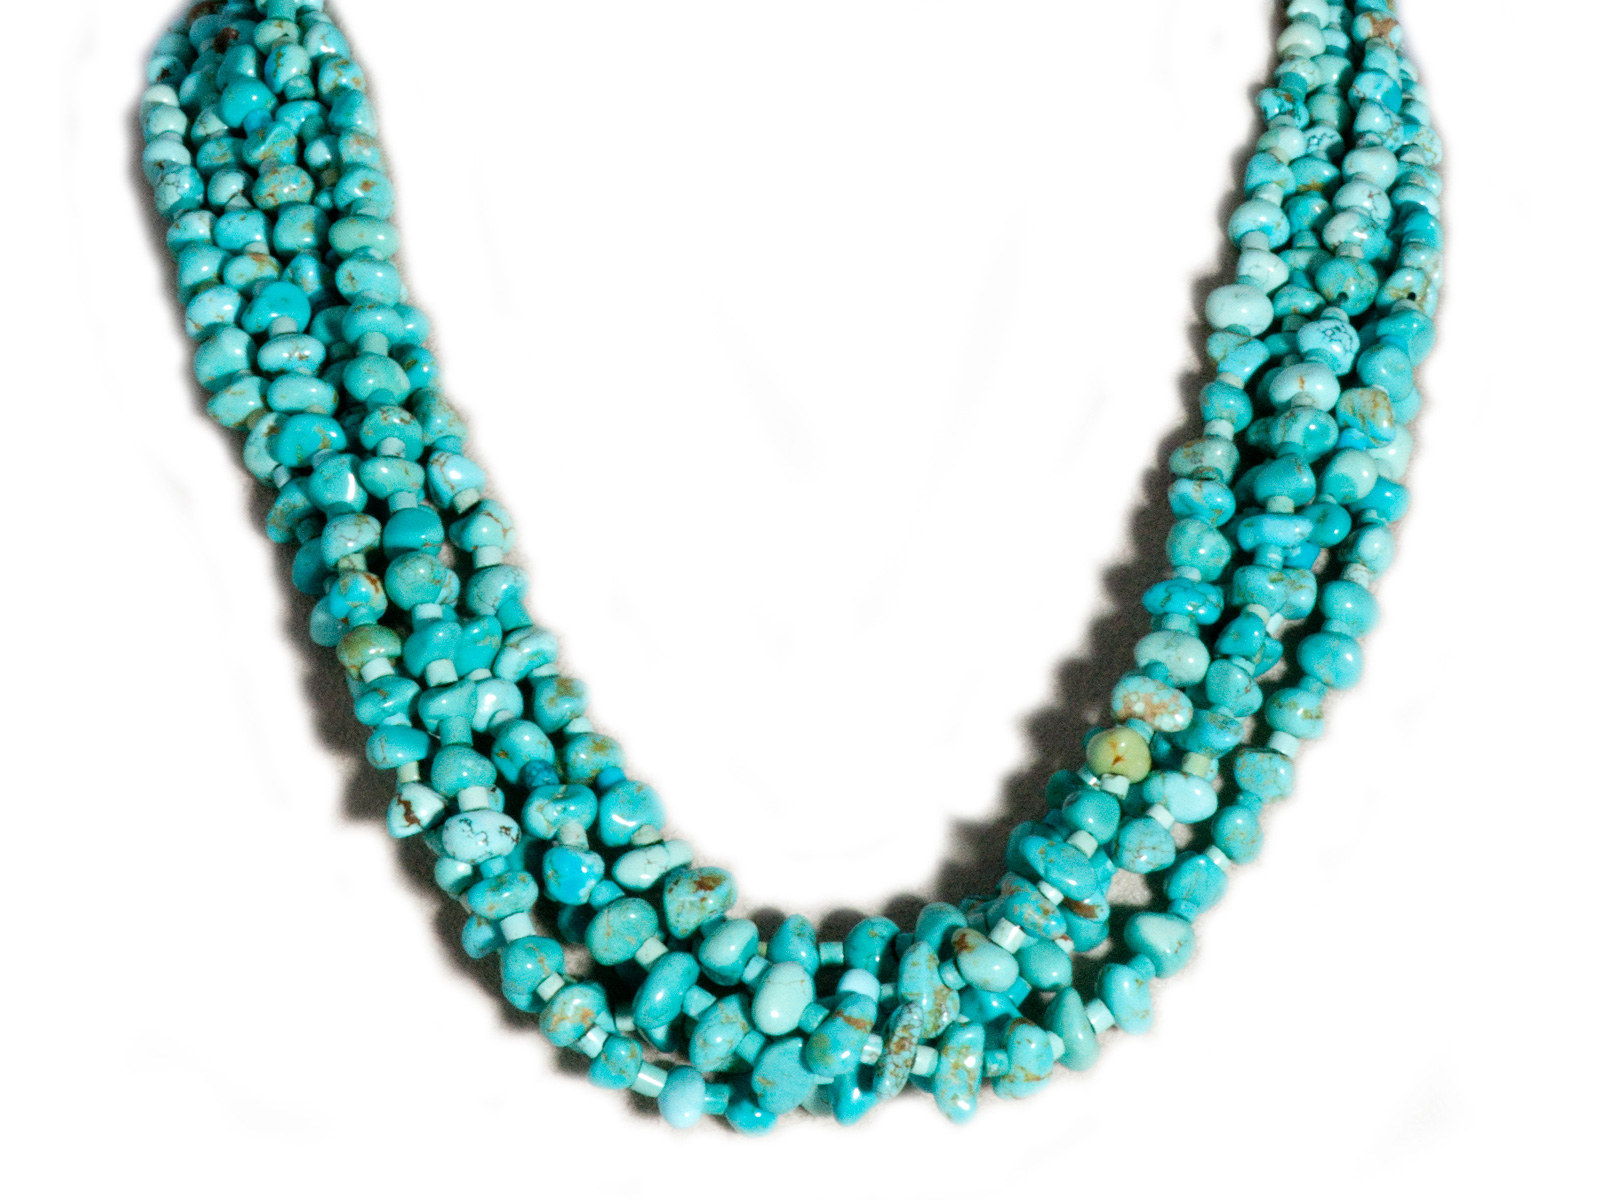 turquoise arrival product row rainbowfamily beads from new com dhgate jewellery multi jewelry necklace